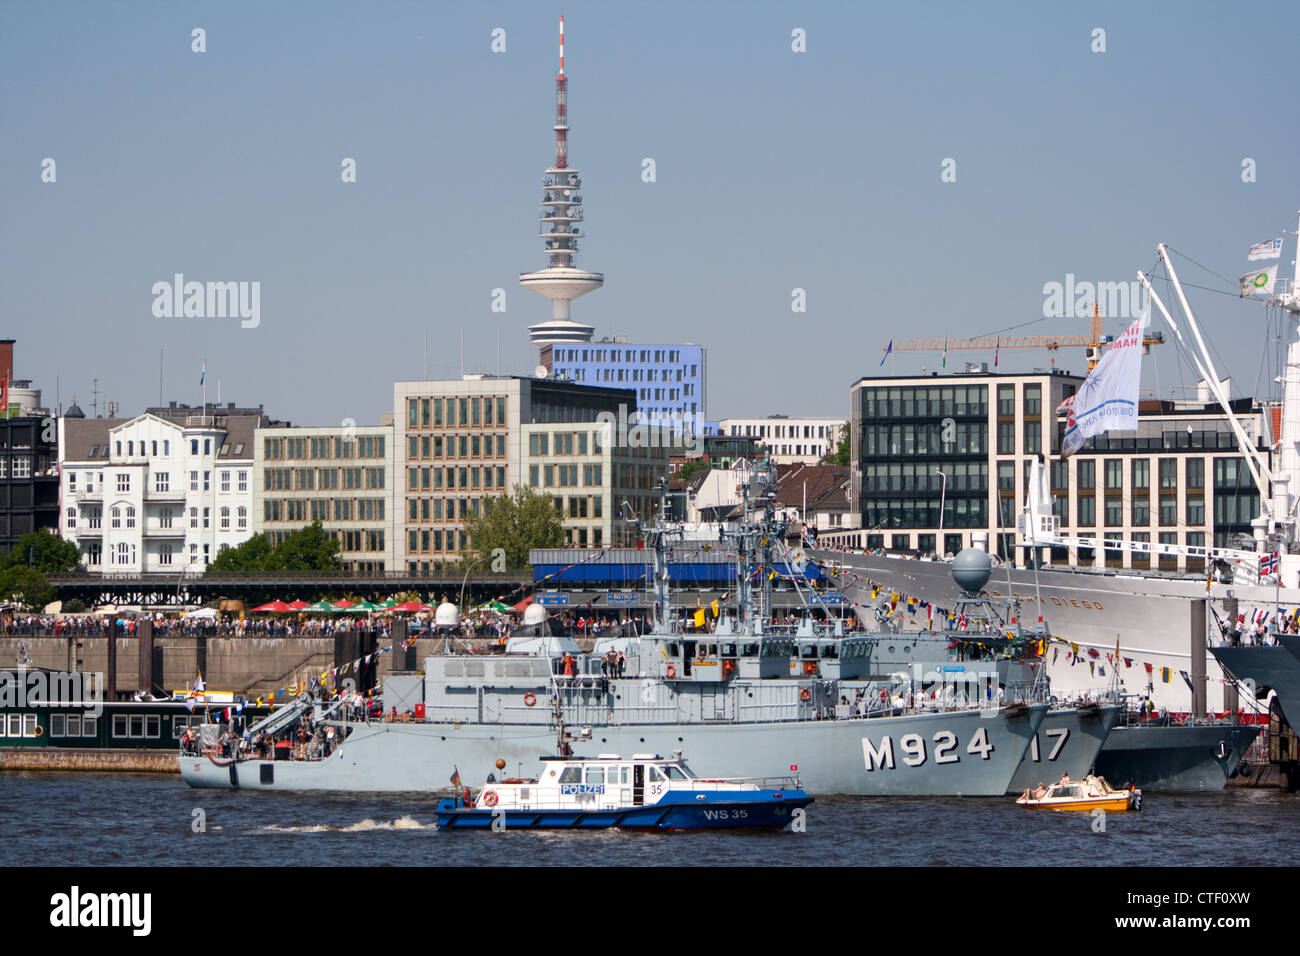 German navy vessel in Hamburg harbor, Germany - Stock Image